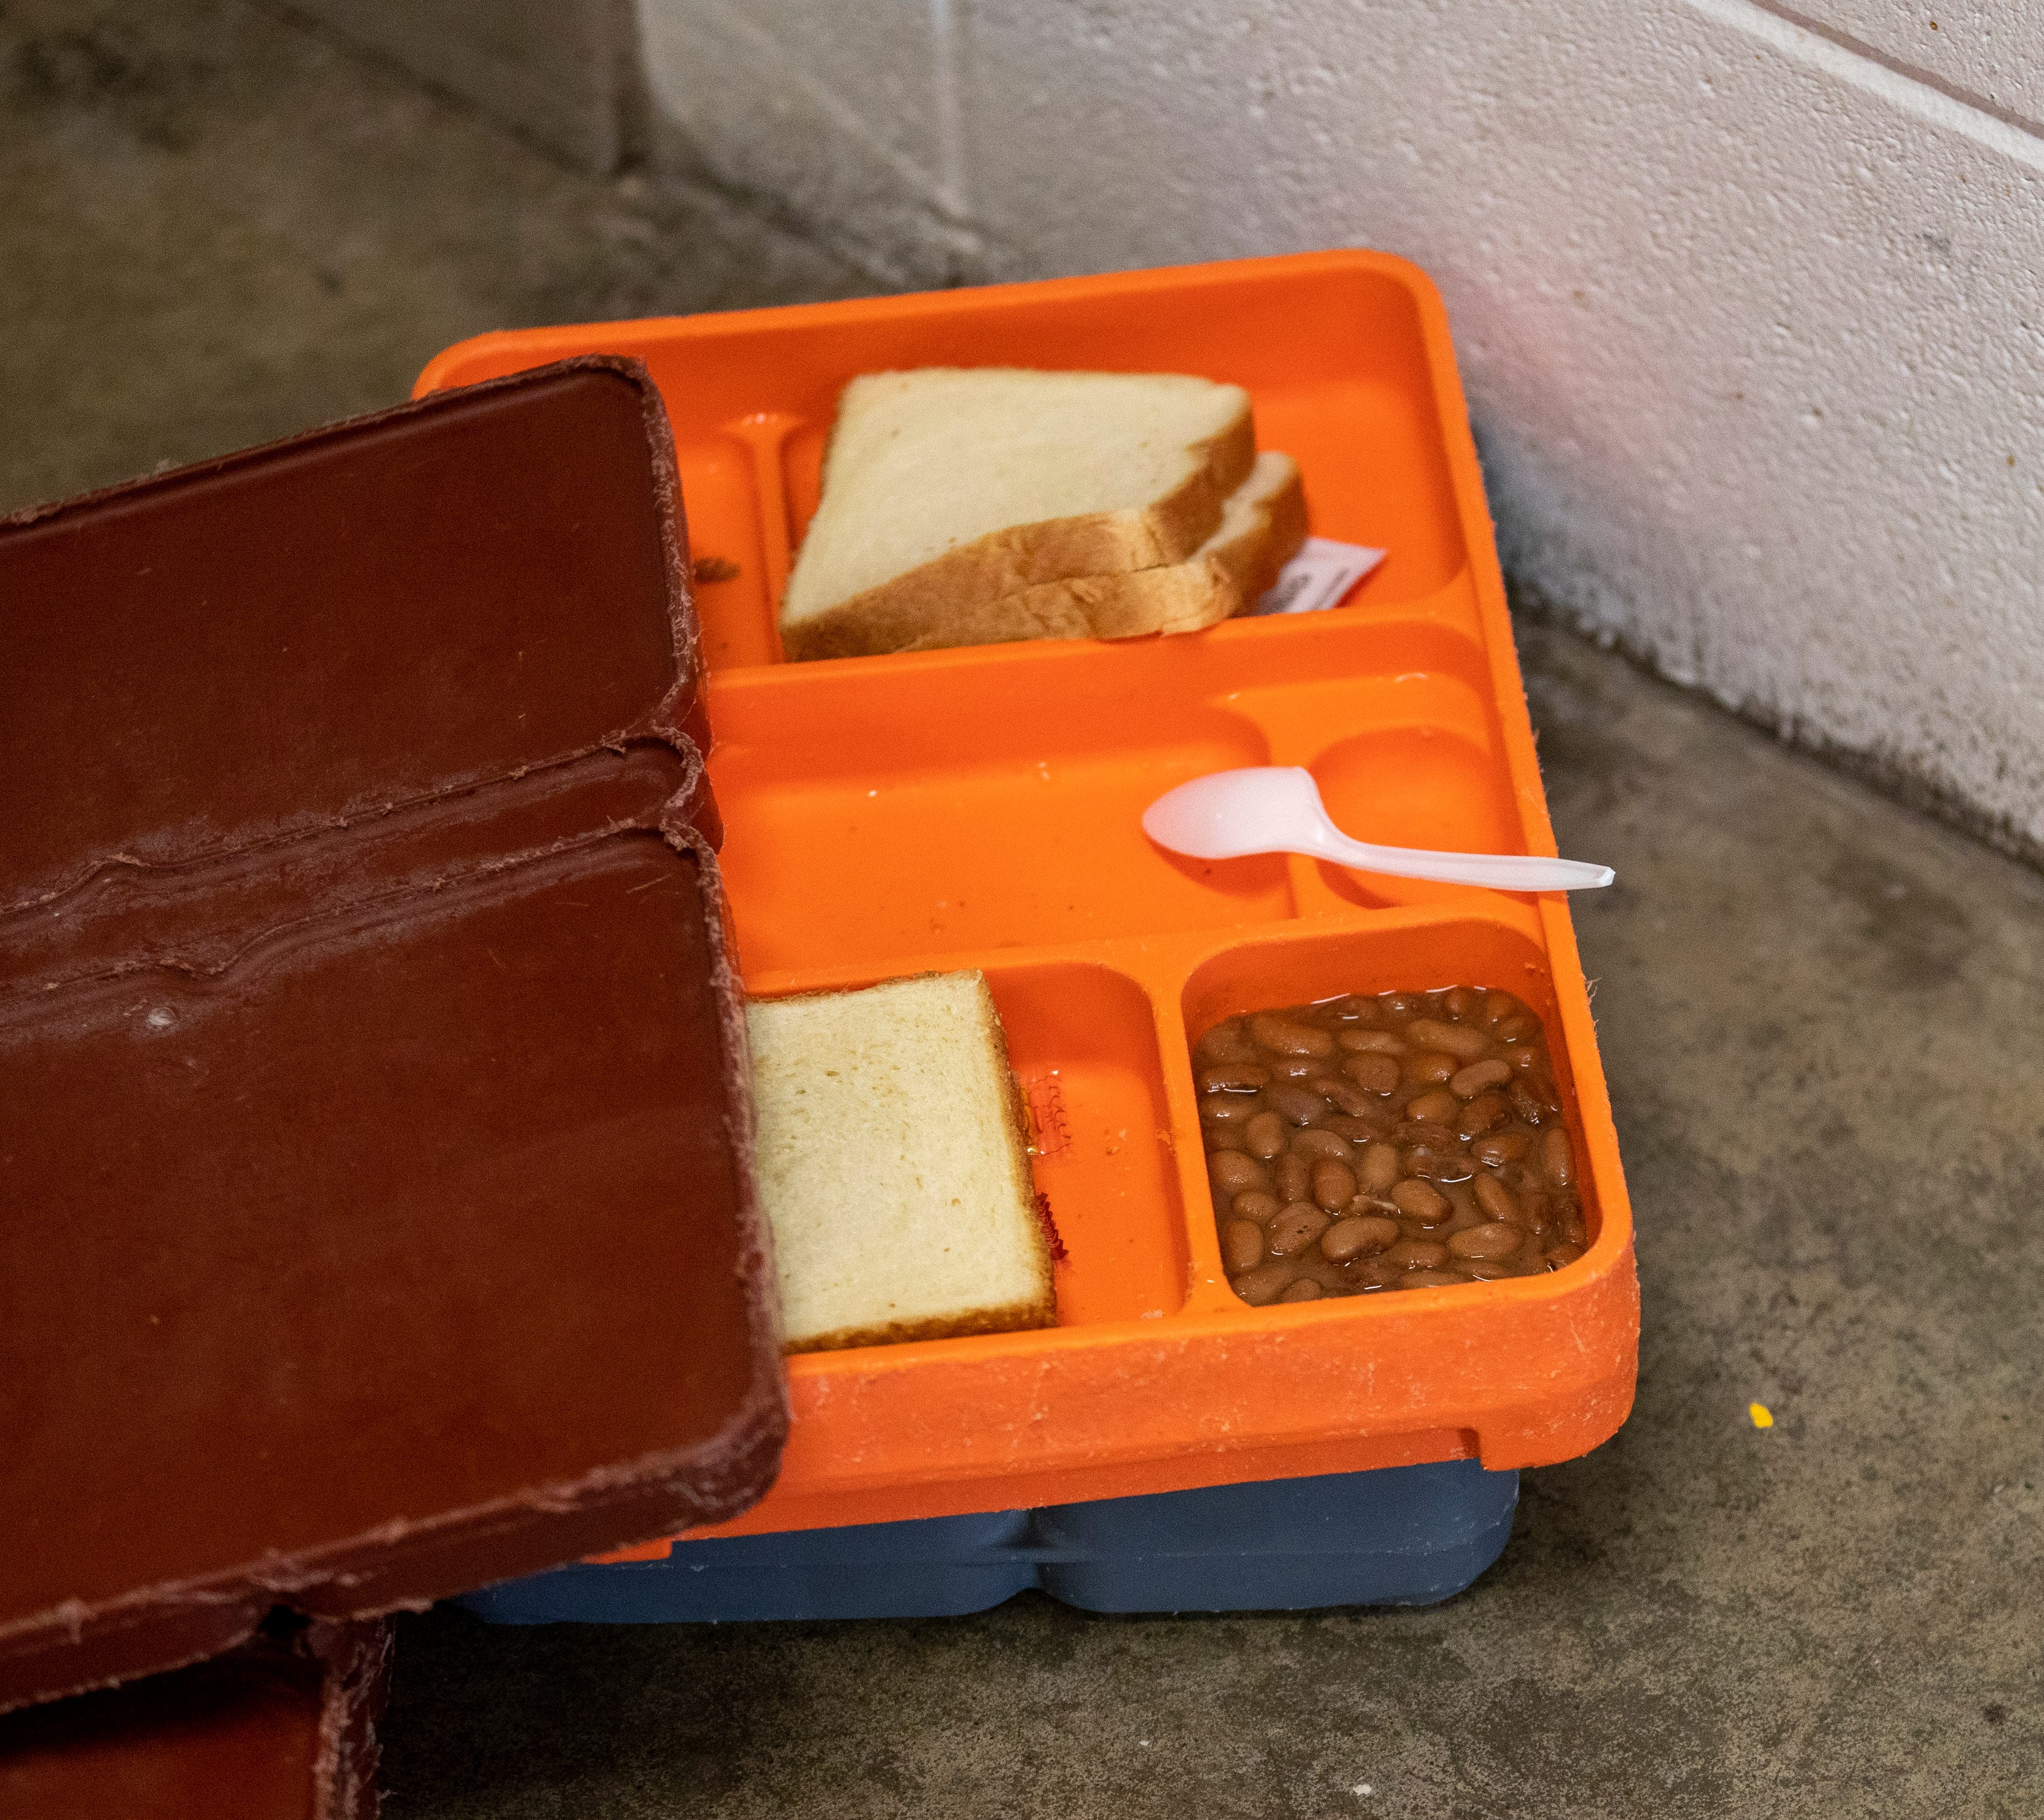 Food tray for inmates